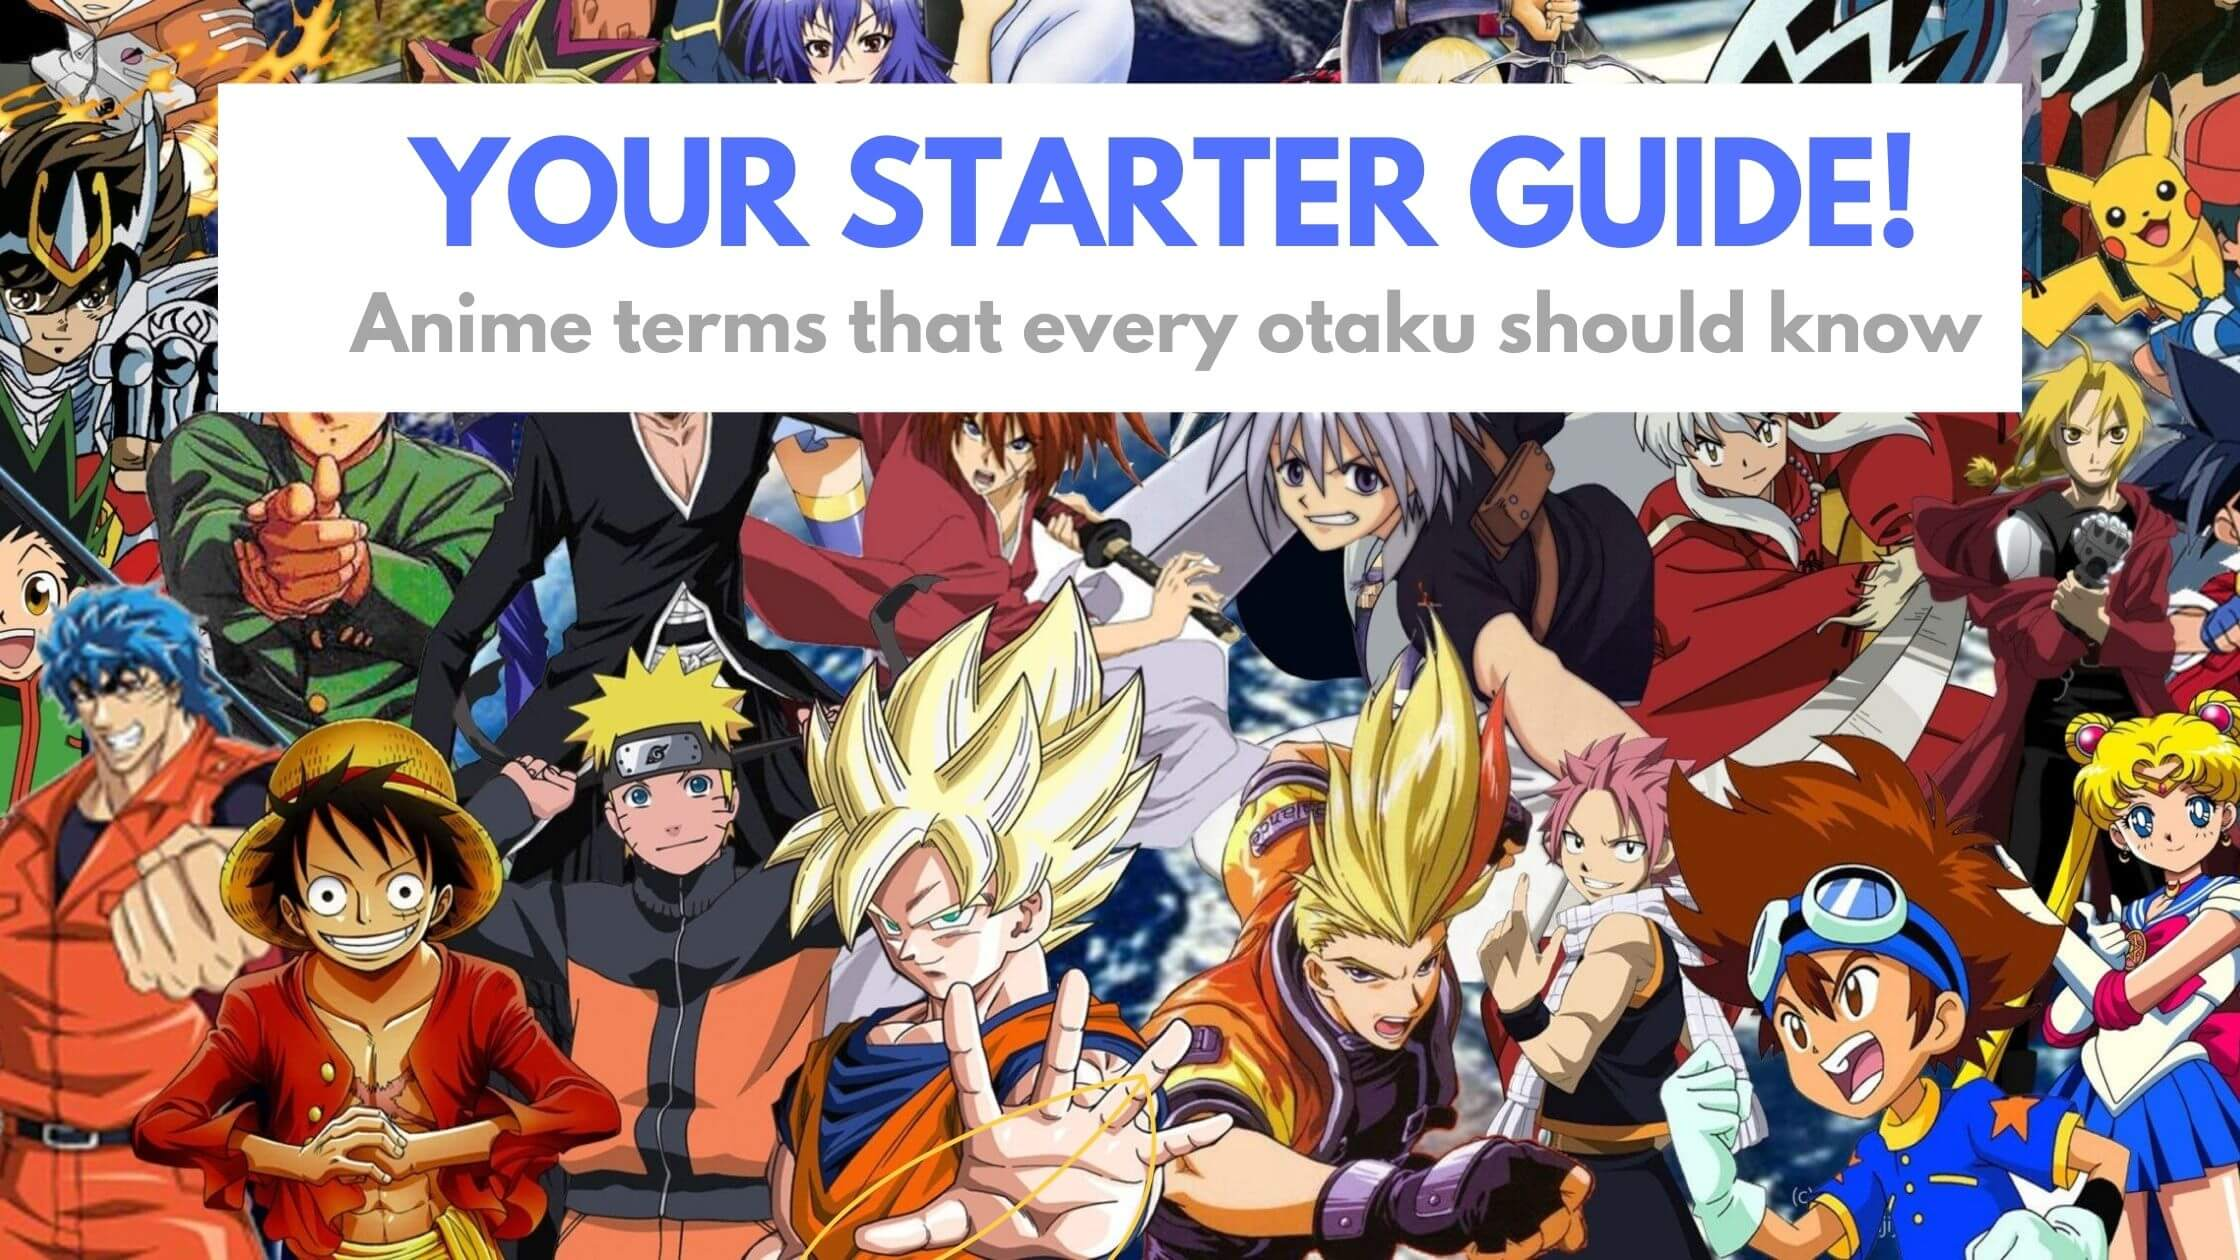 45 Anime terms and words that every otaku should know!